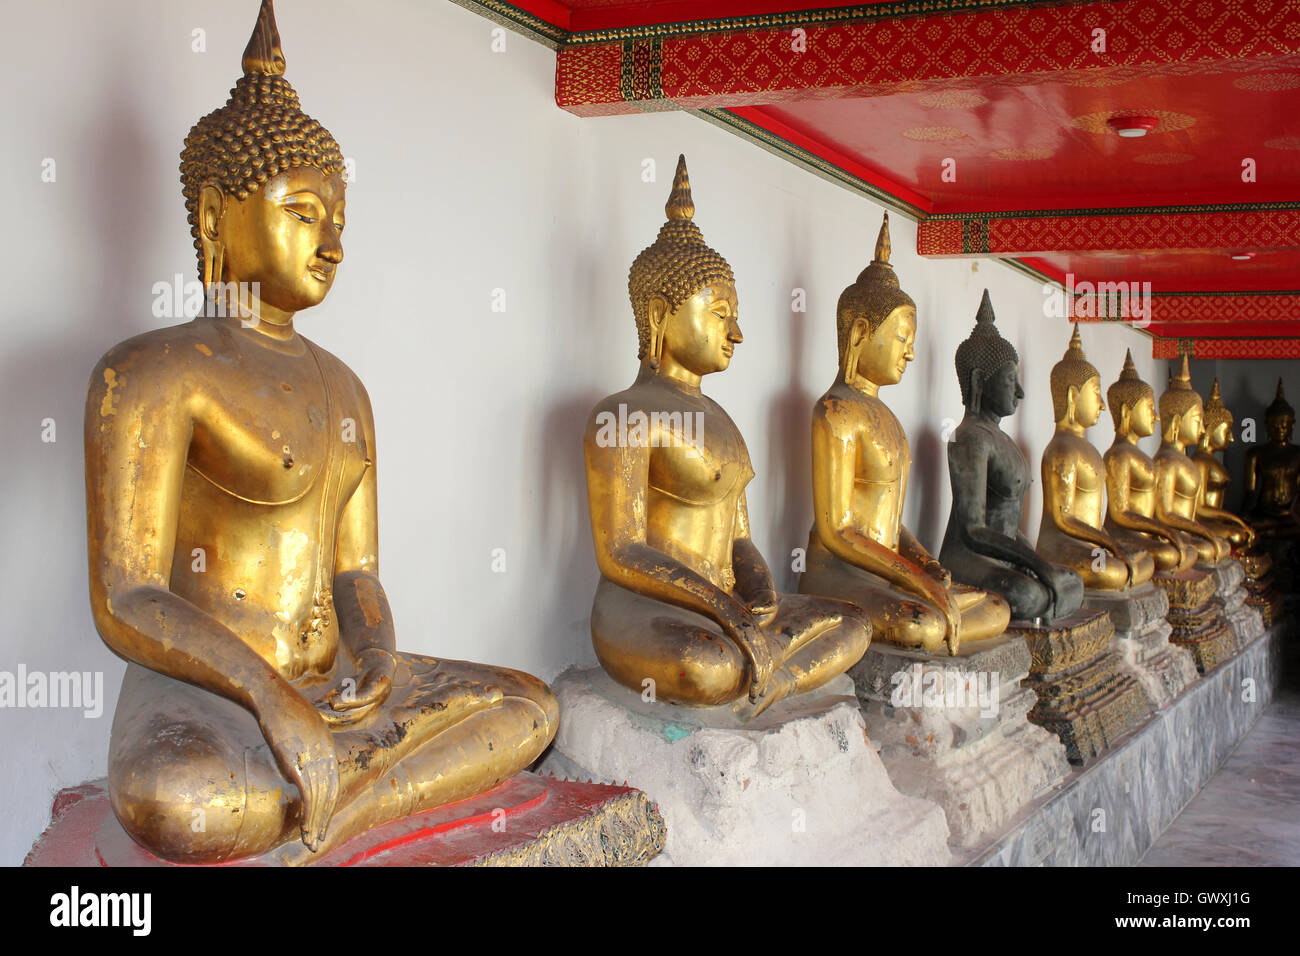 Line Of Sitting Buddhas At Wat Pho Temple, Bangkok, Thailand - Stock Image